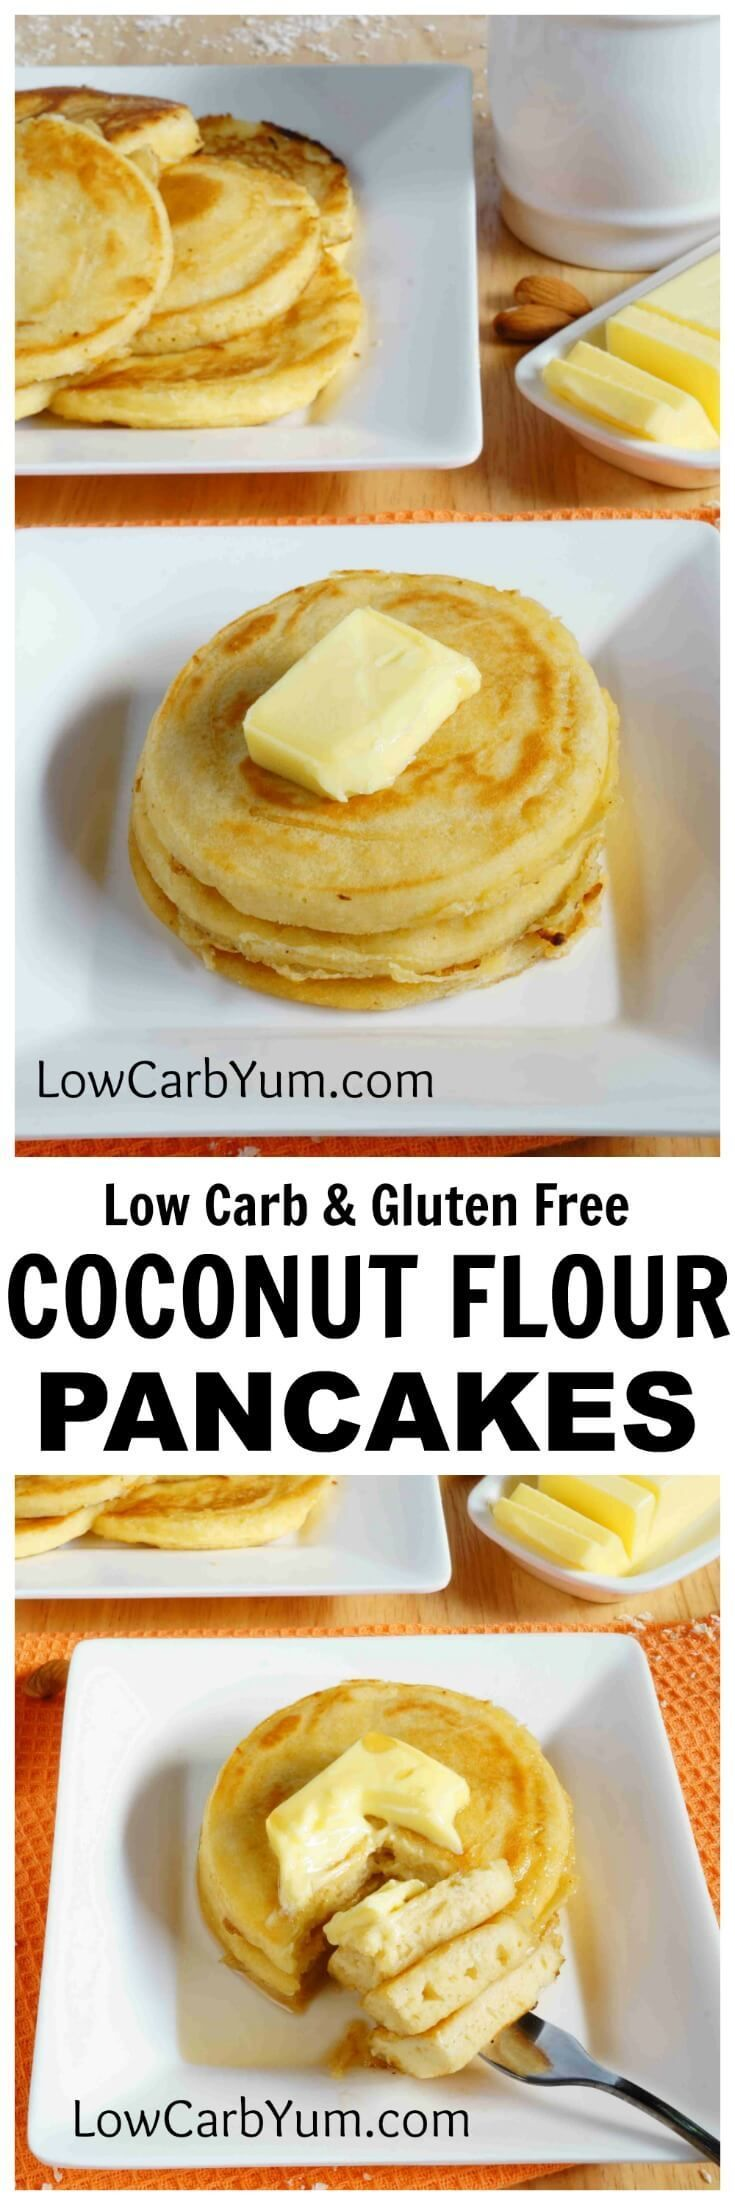 An easy recipe for fluffy gluten free coconut flour pancakes. Such a tasty breakfast treat! Enjoy them with your favorite low carb syrup or eat them plain.   LowCarbYum.com